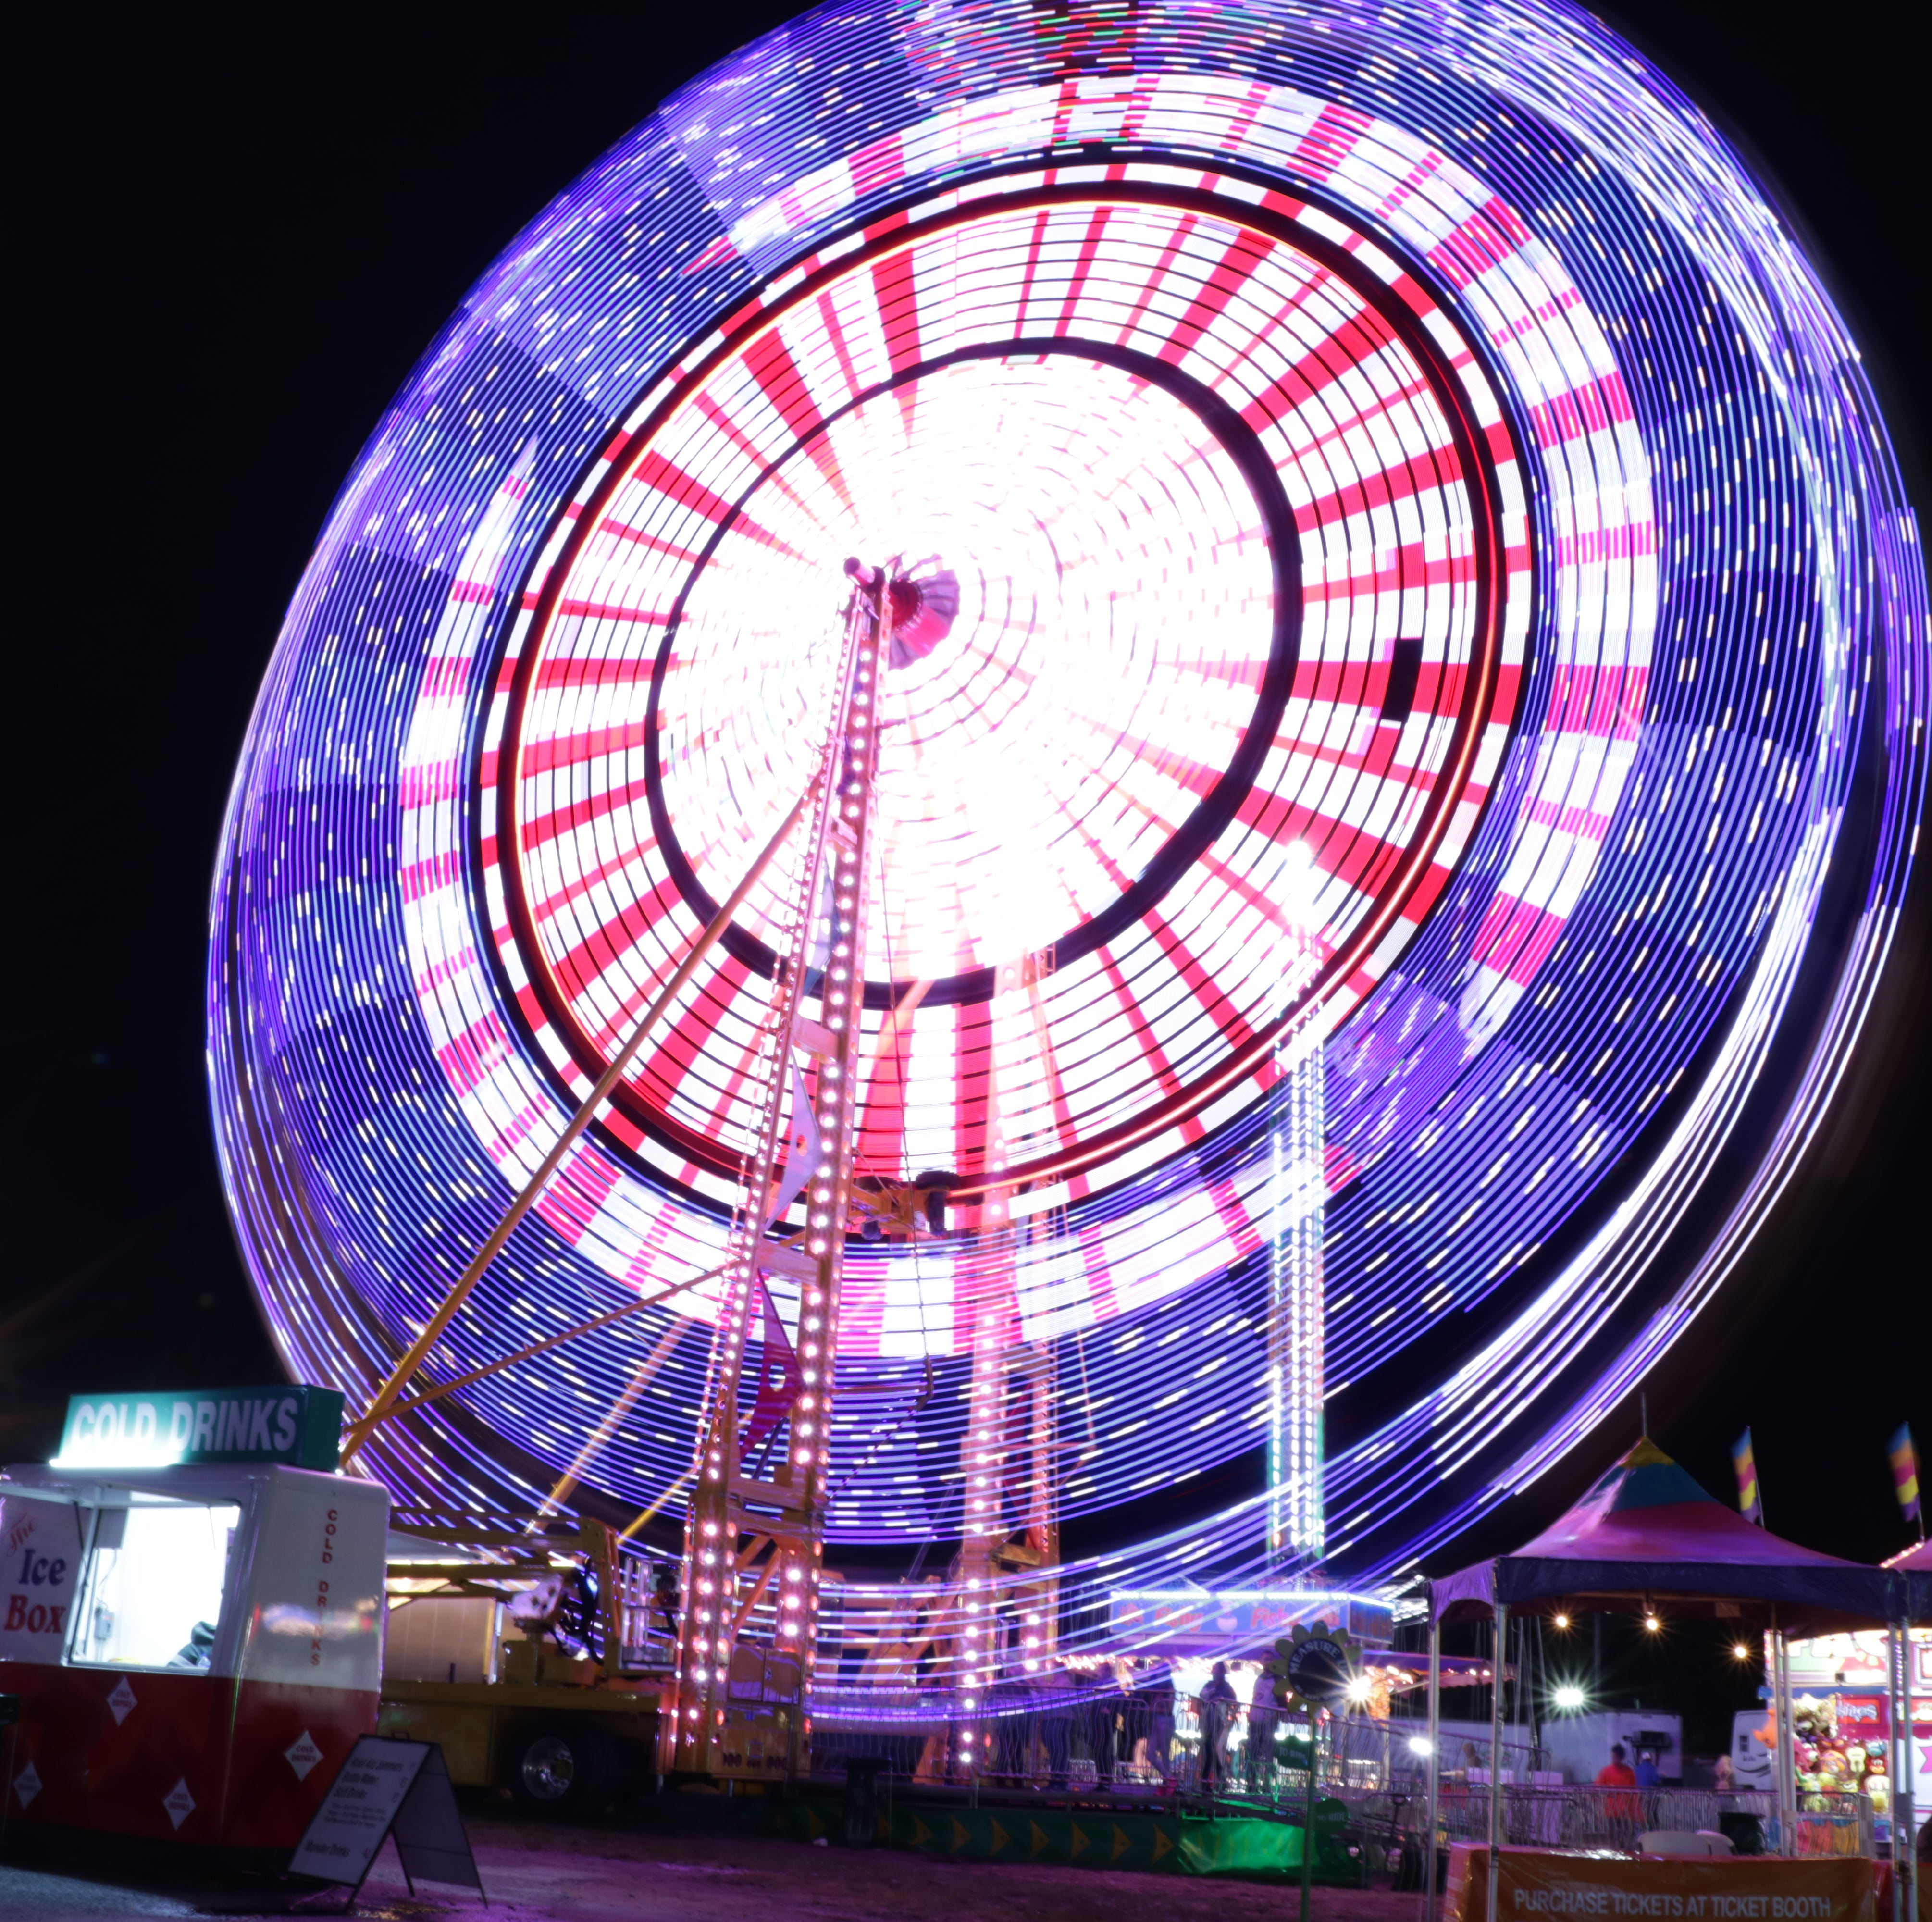 Italian bobsleds and vintage carousels: A preview of NC Mountain State Fair's rides